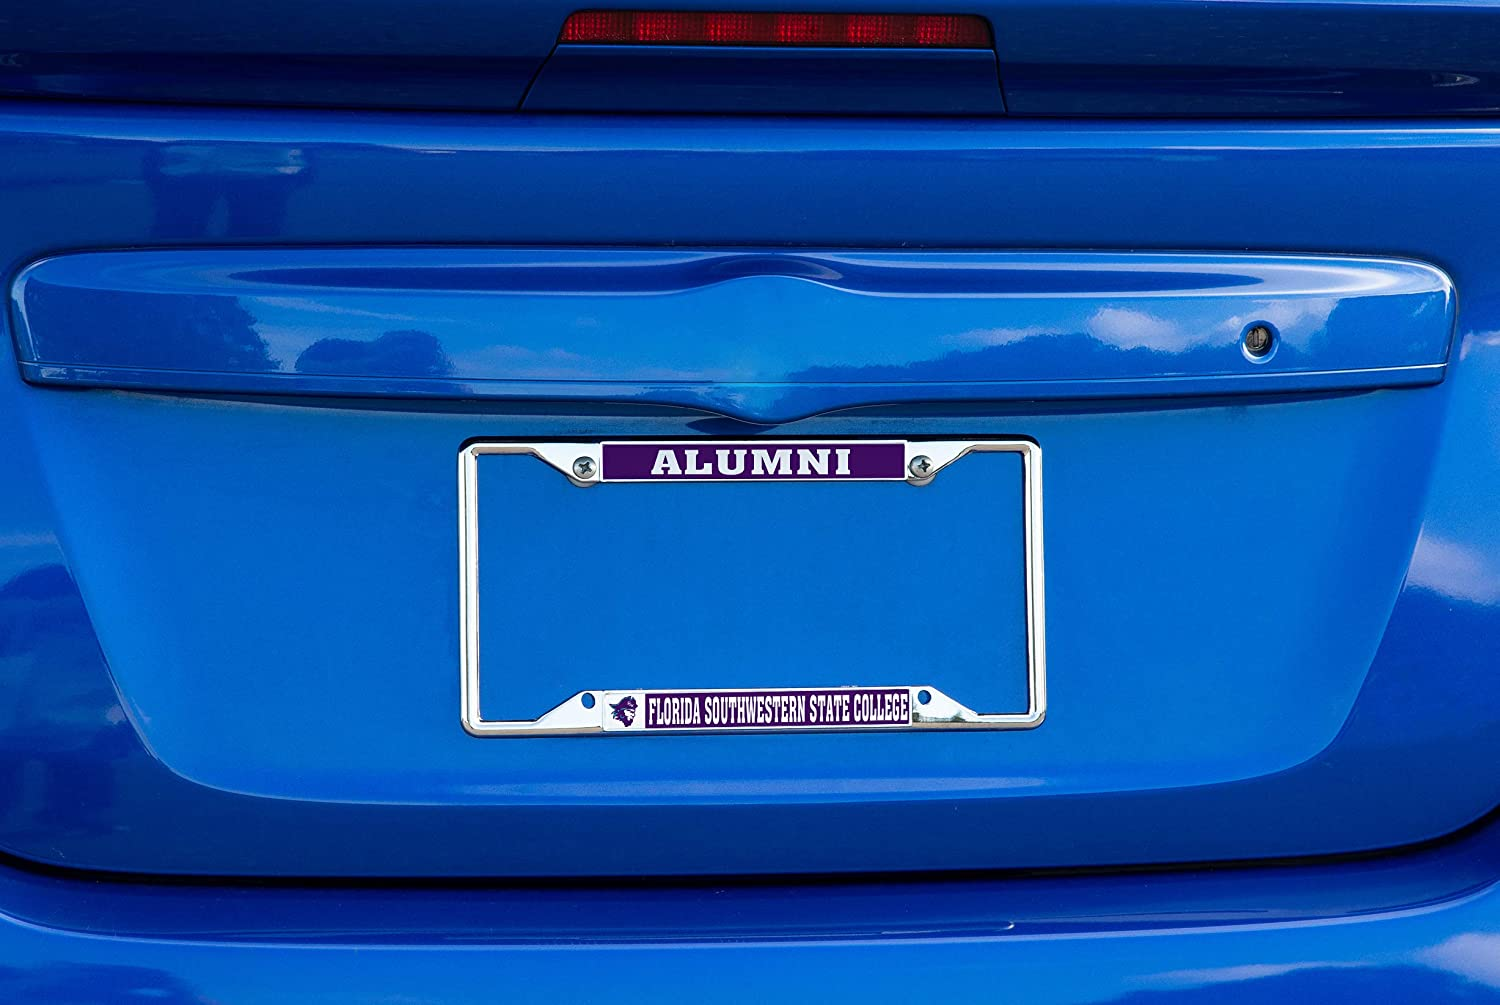 Alumni Desert Cactus Florida Southwestern State College The Buccaneers NCAA Metal License Plate Frame for Front or Back of Car Officially Licensed